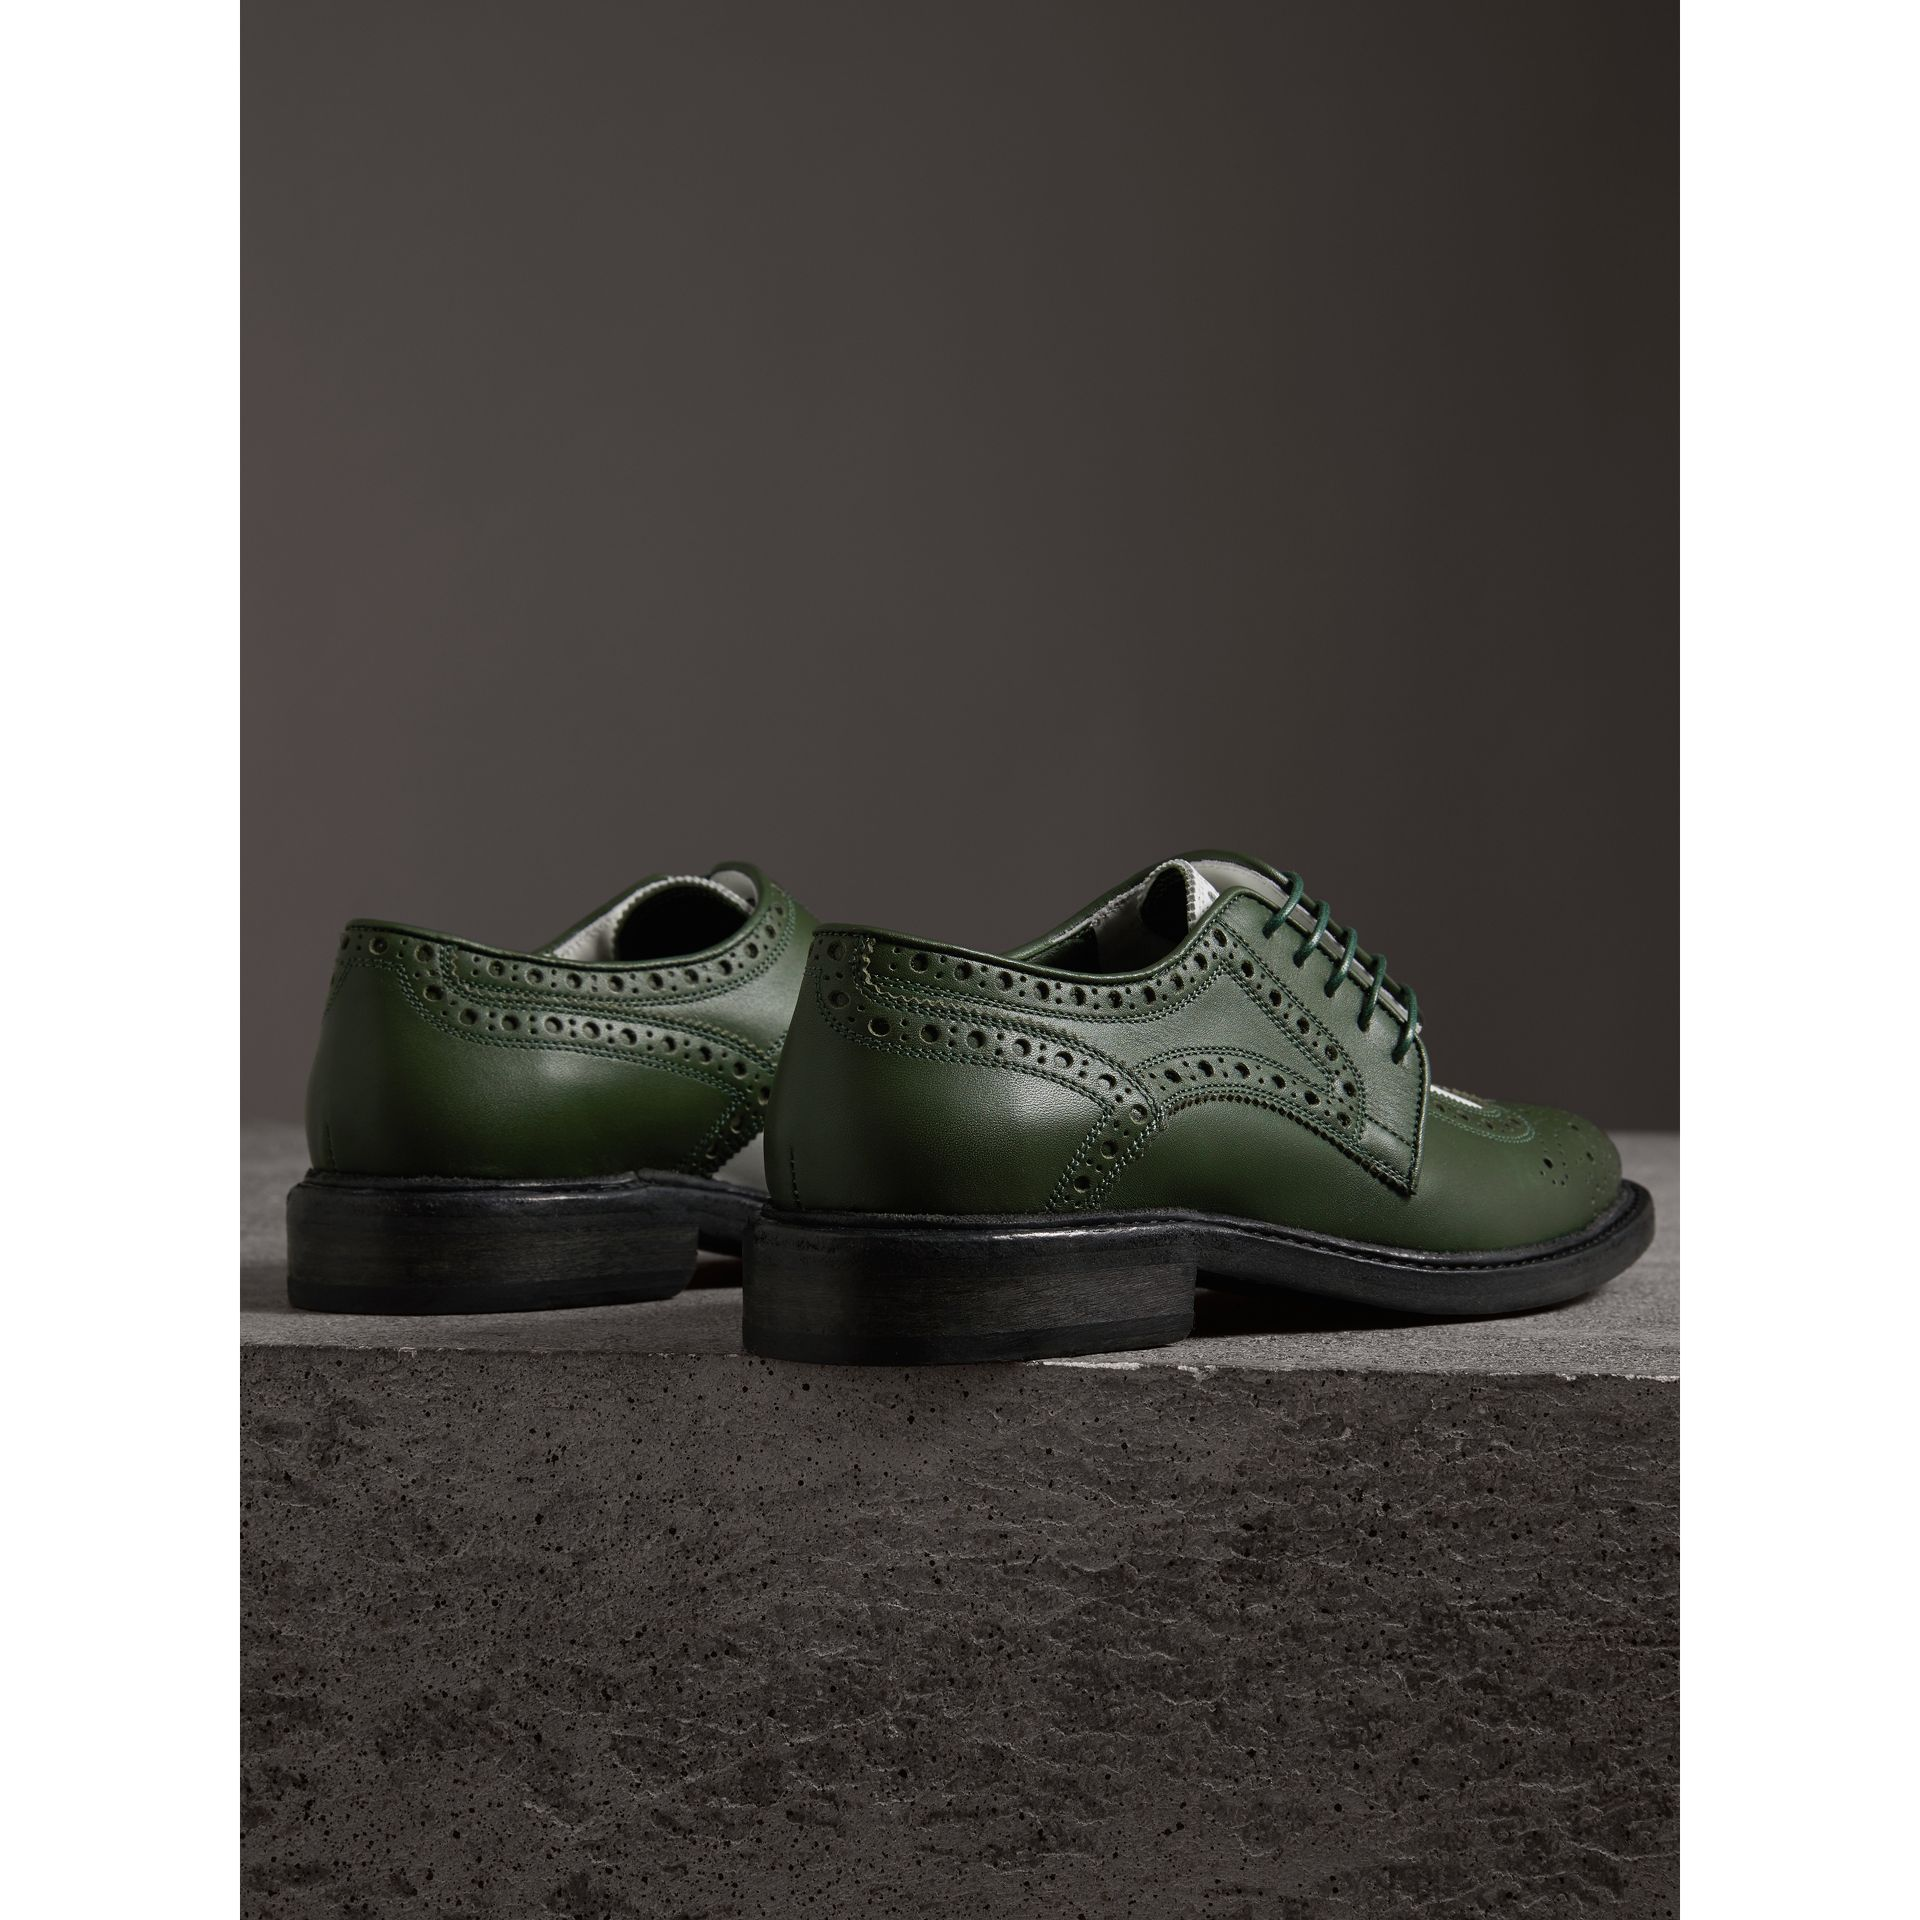 Two-tone Asymmetric Closure Leather Brogues in Dark Green - Women | Burberry Singapore - gallery image 2